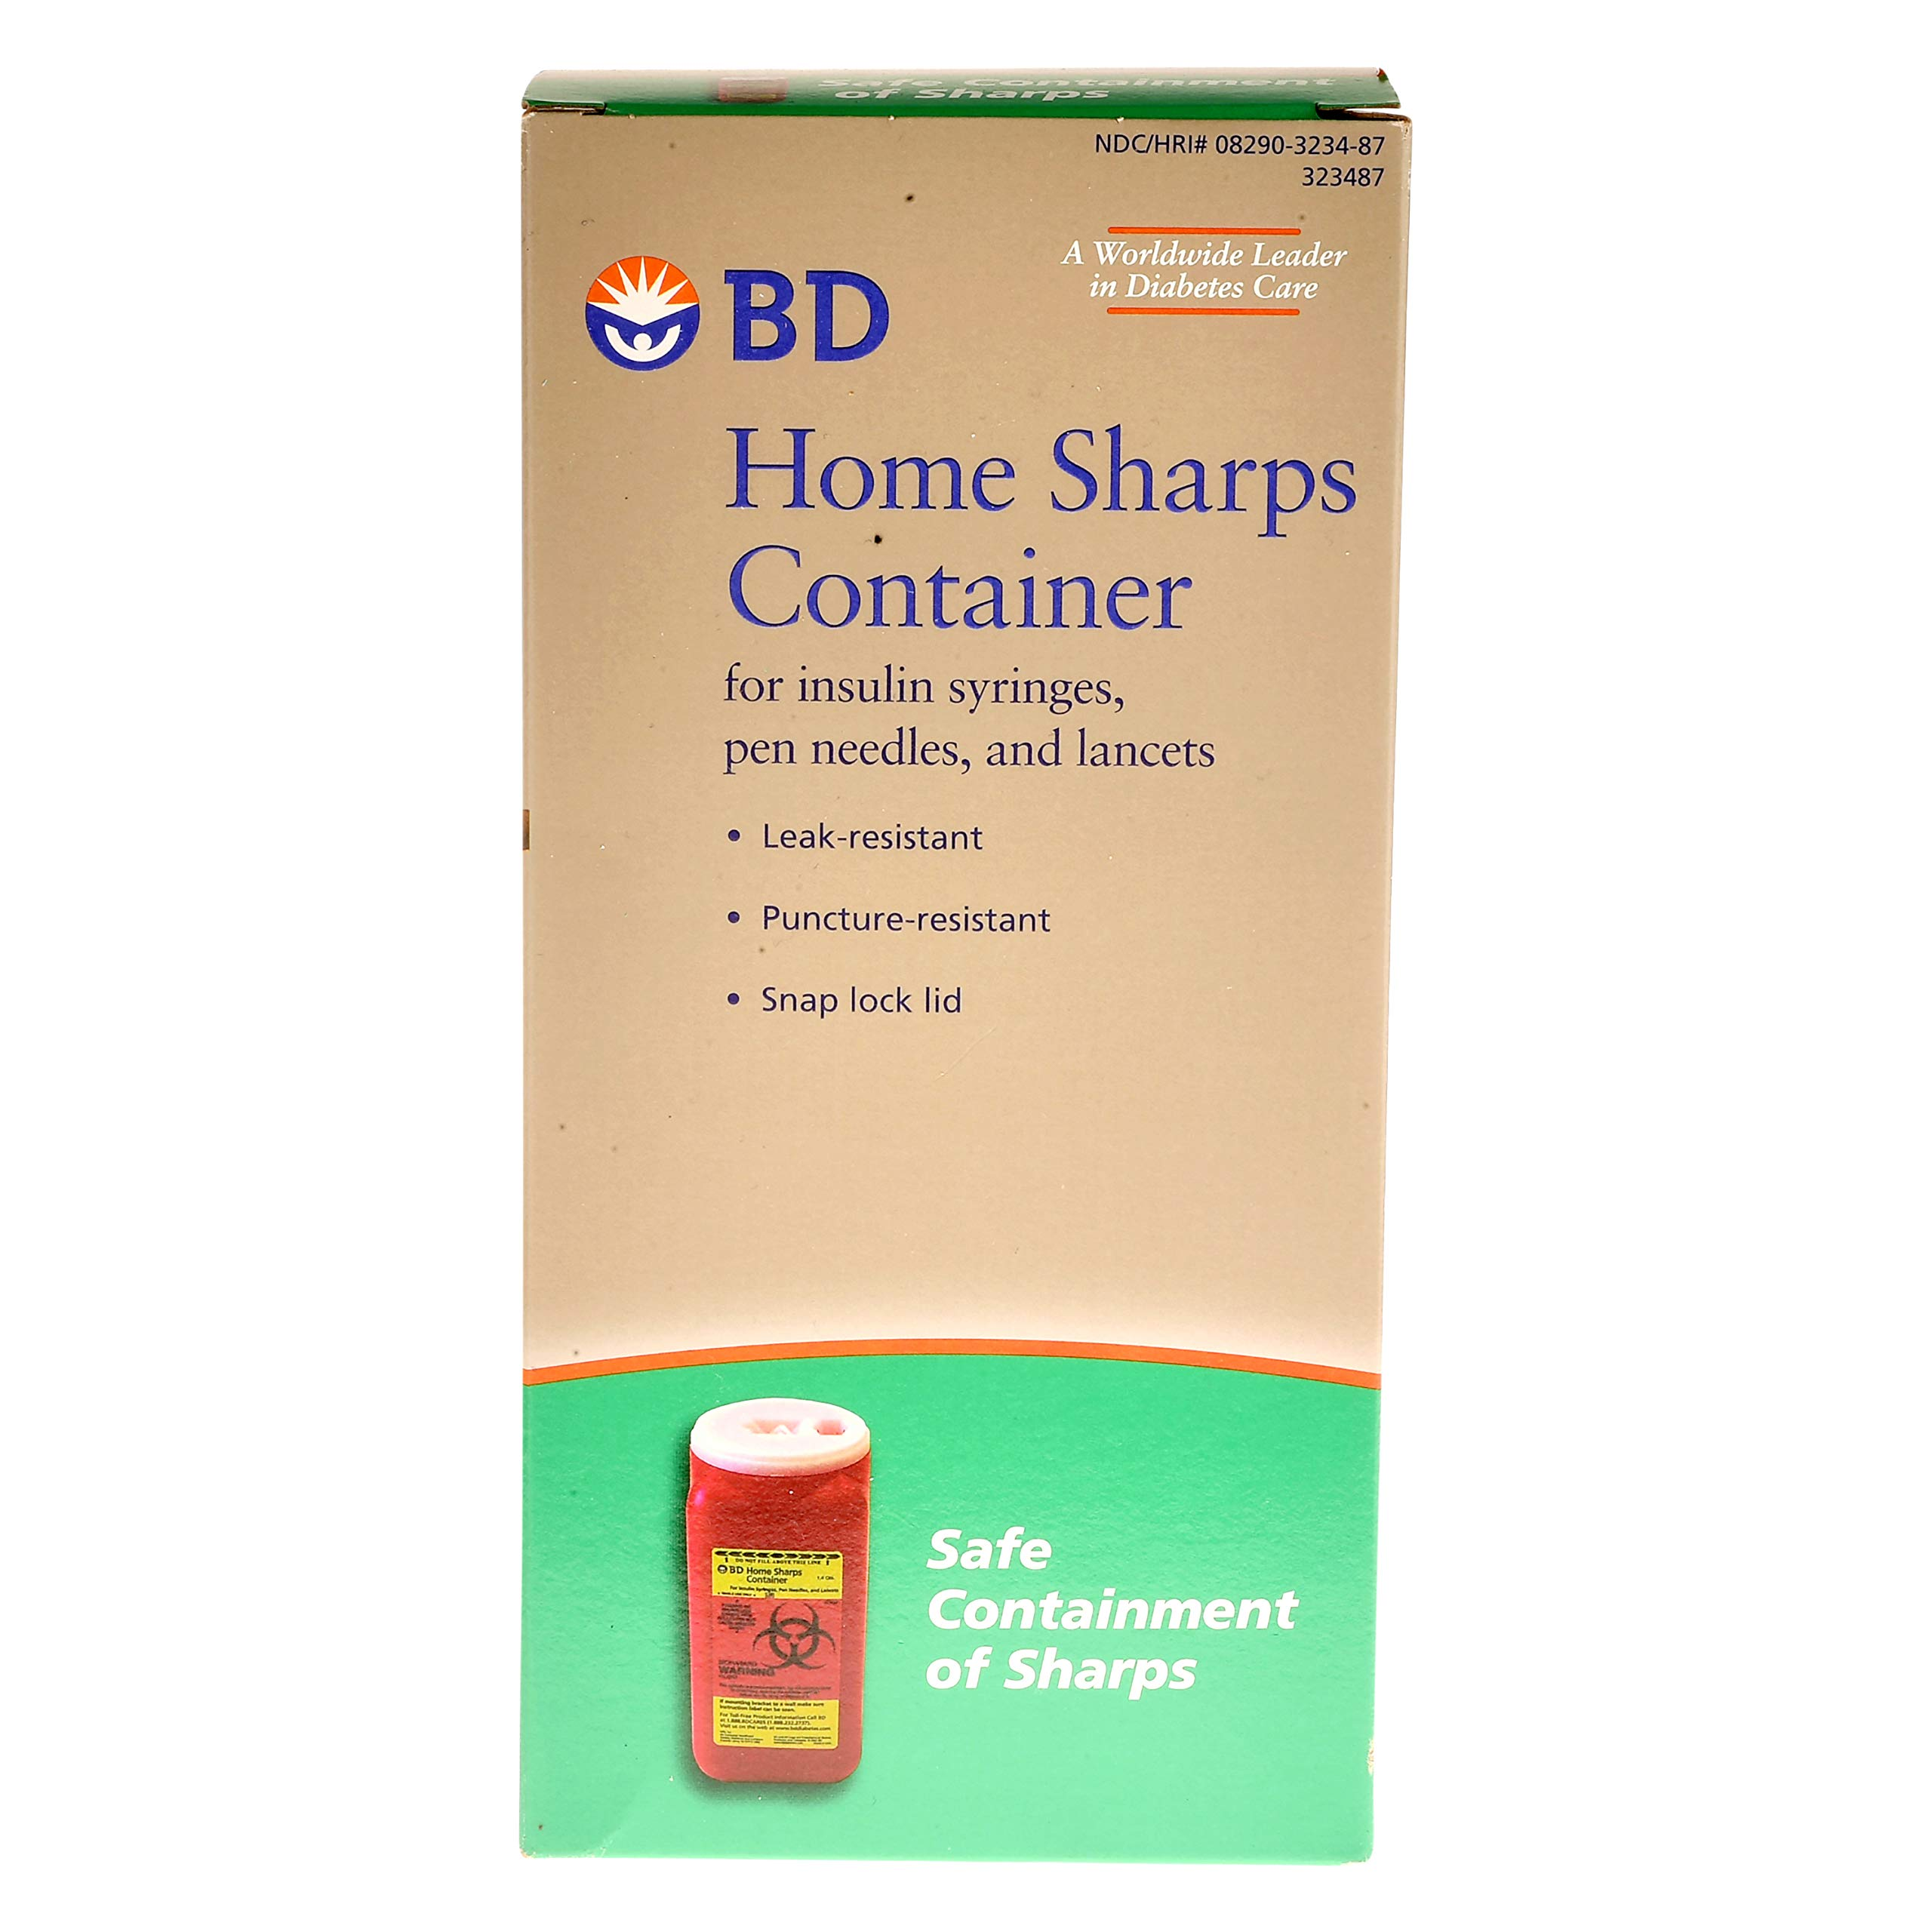 BD Home Sharps Container - Each, Pack of 5 by BD